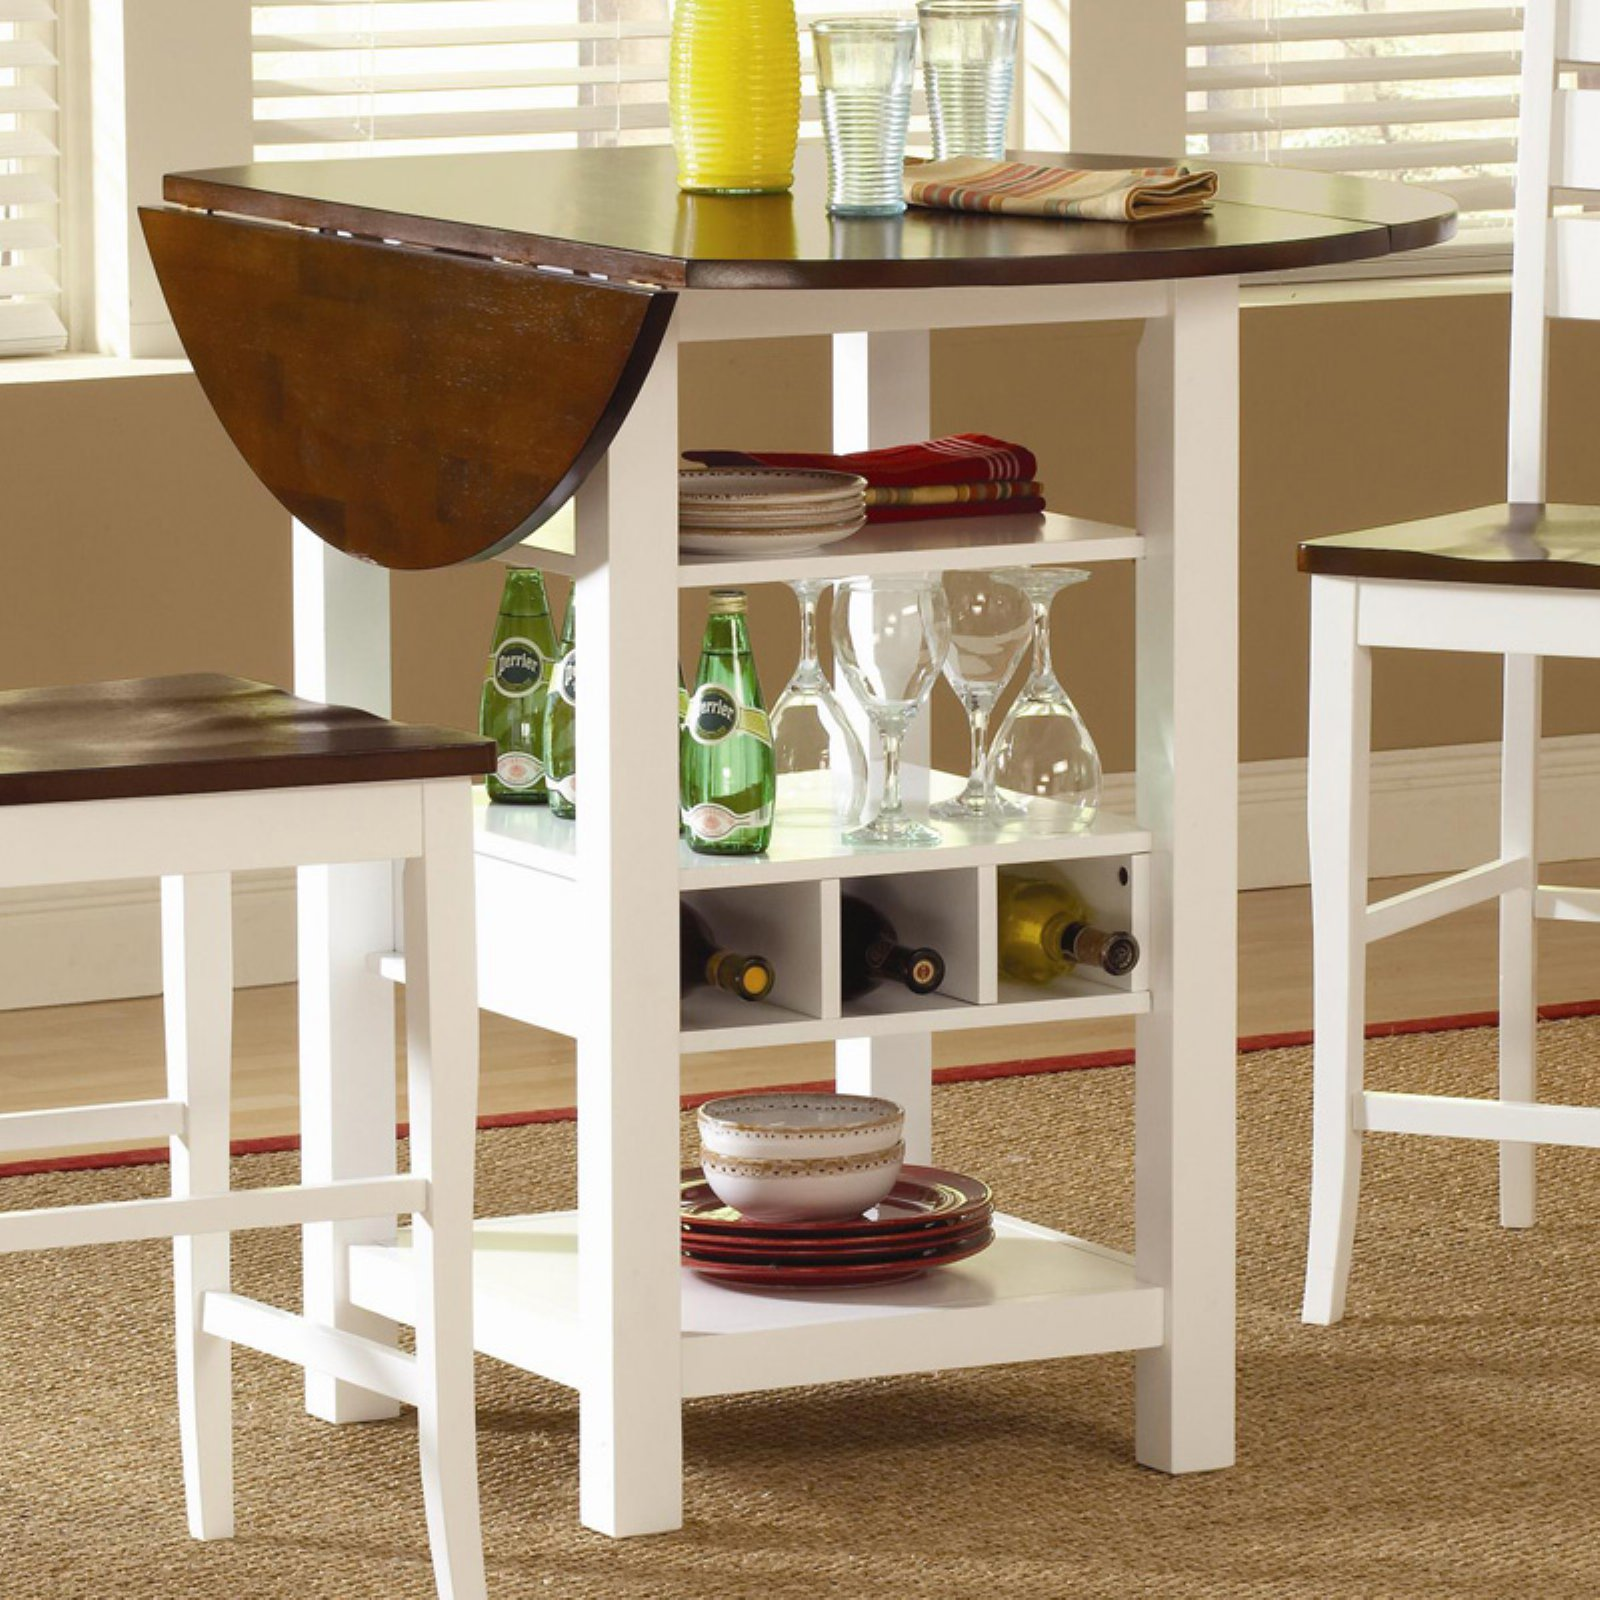 Product Image Ridgewood Counter Height Drop Leaf Dining Table With Storage